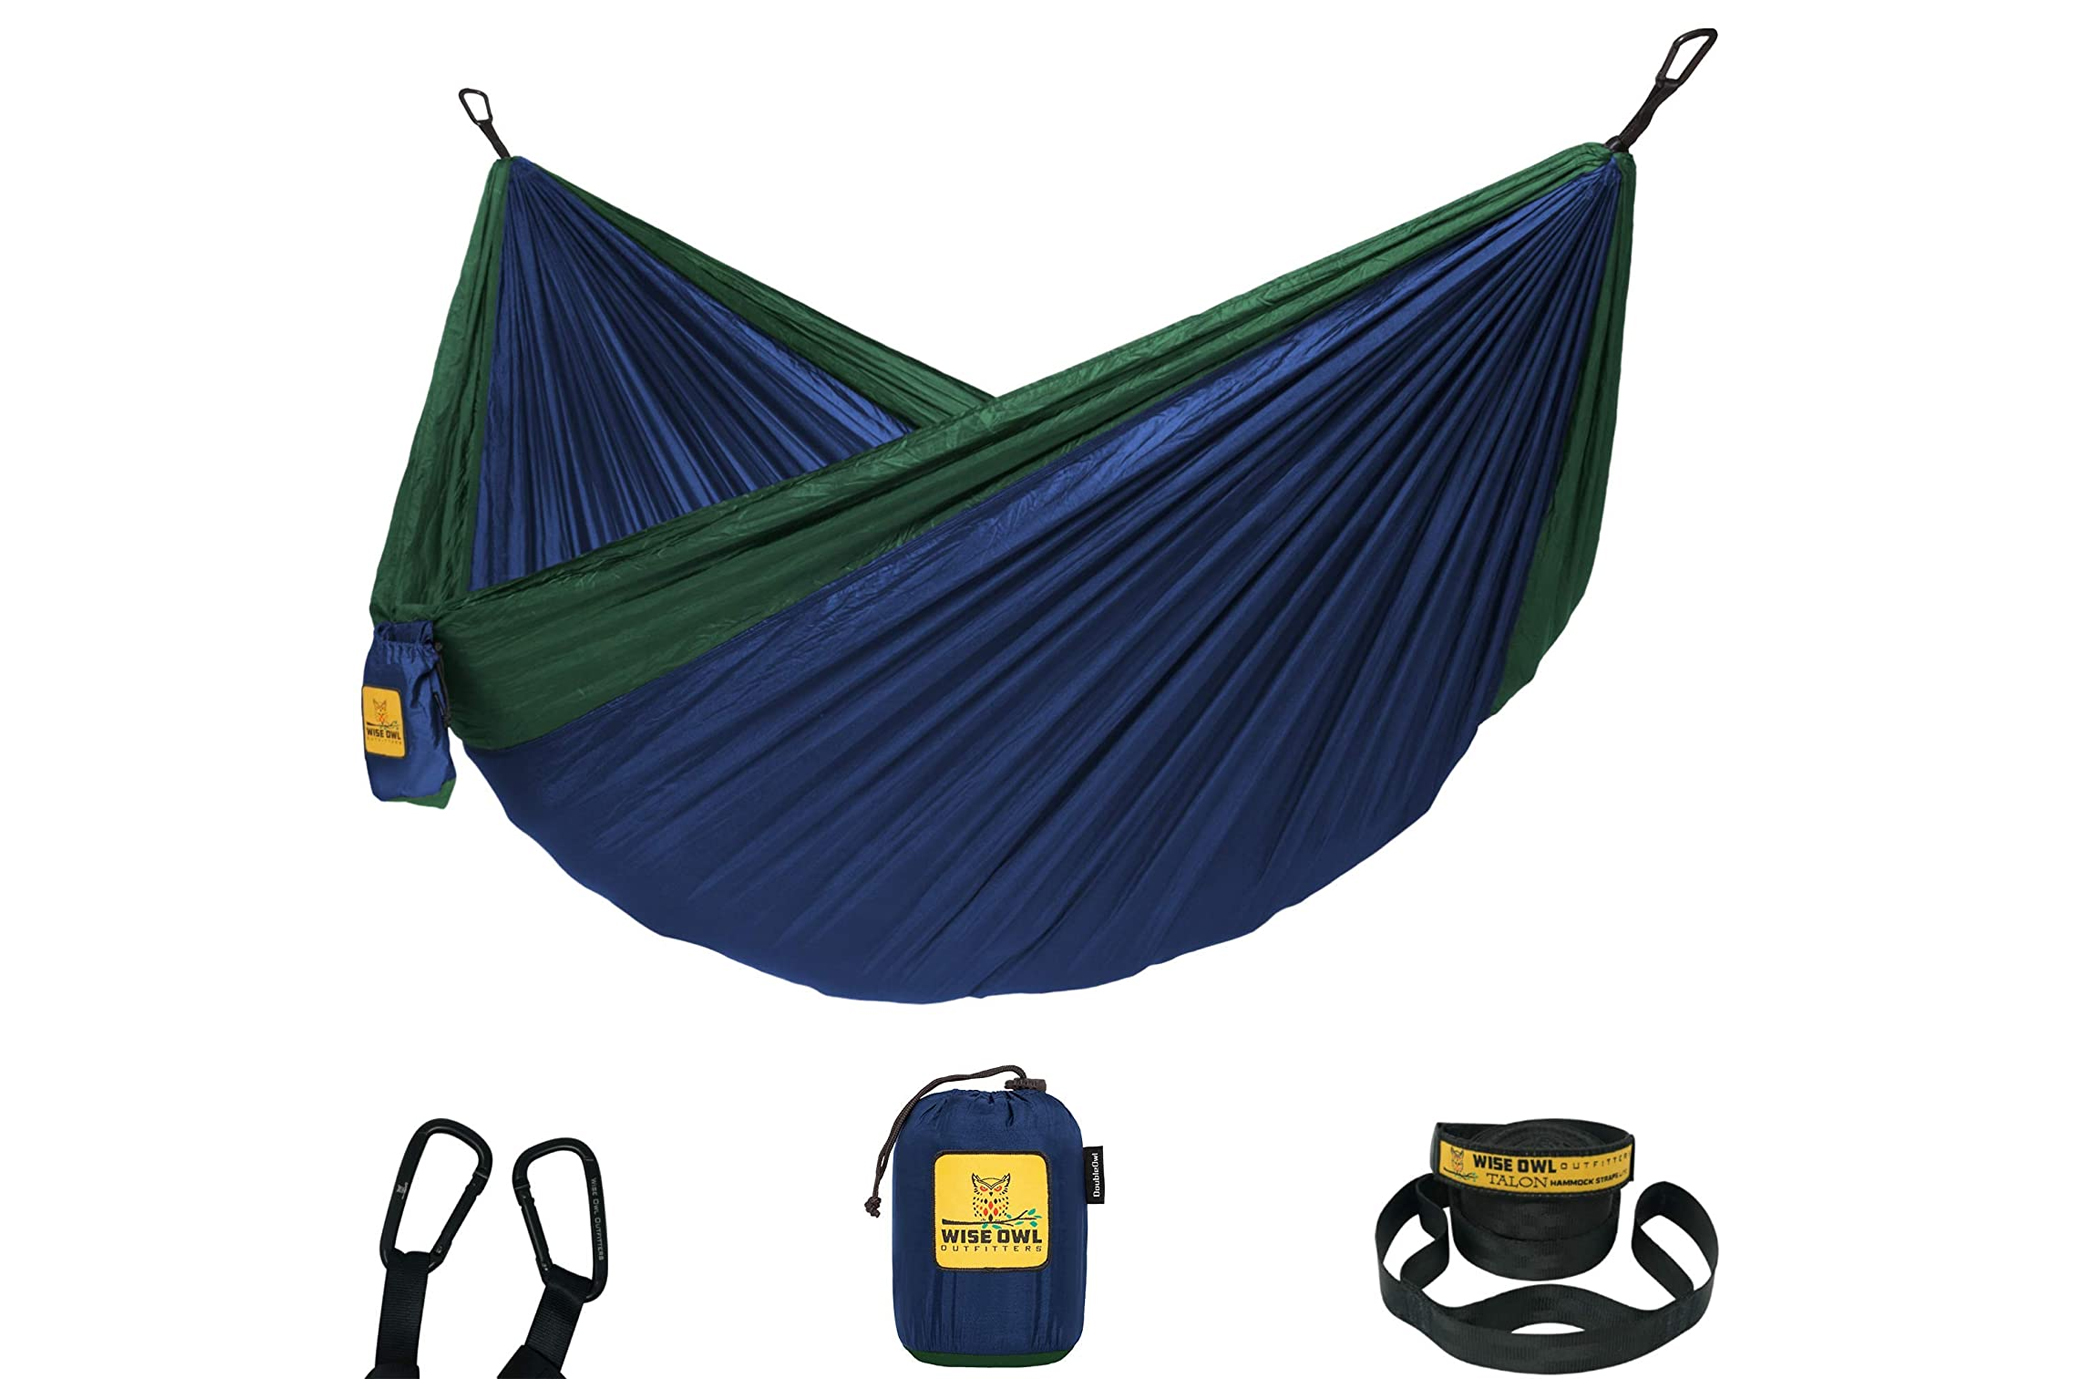 wiseowl outfitters singleowl hammock